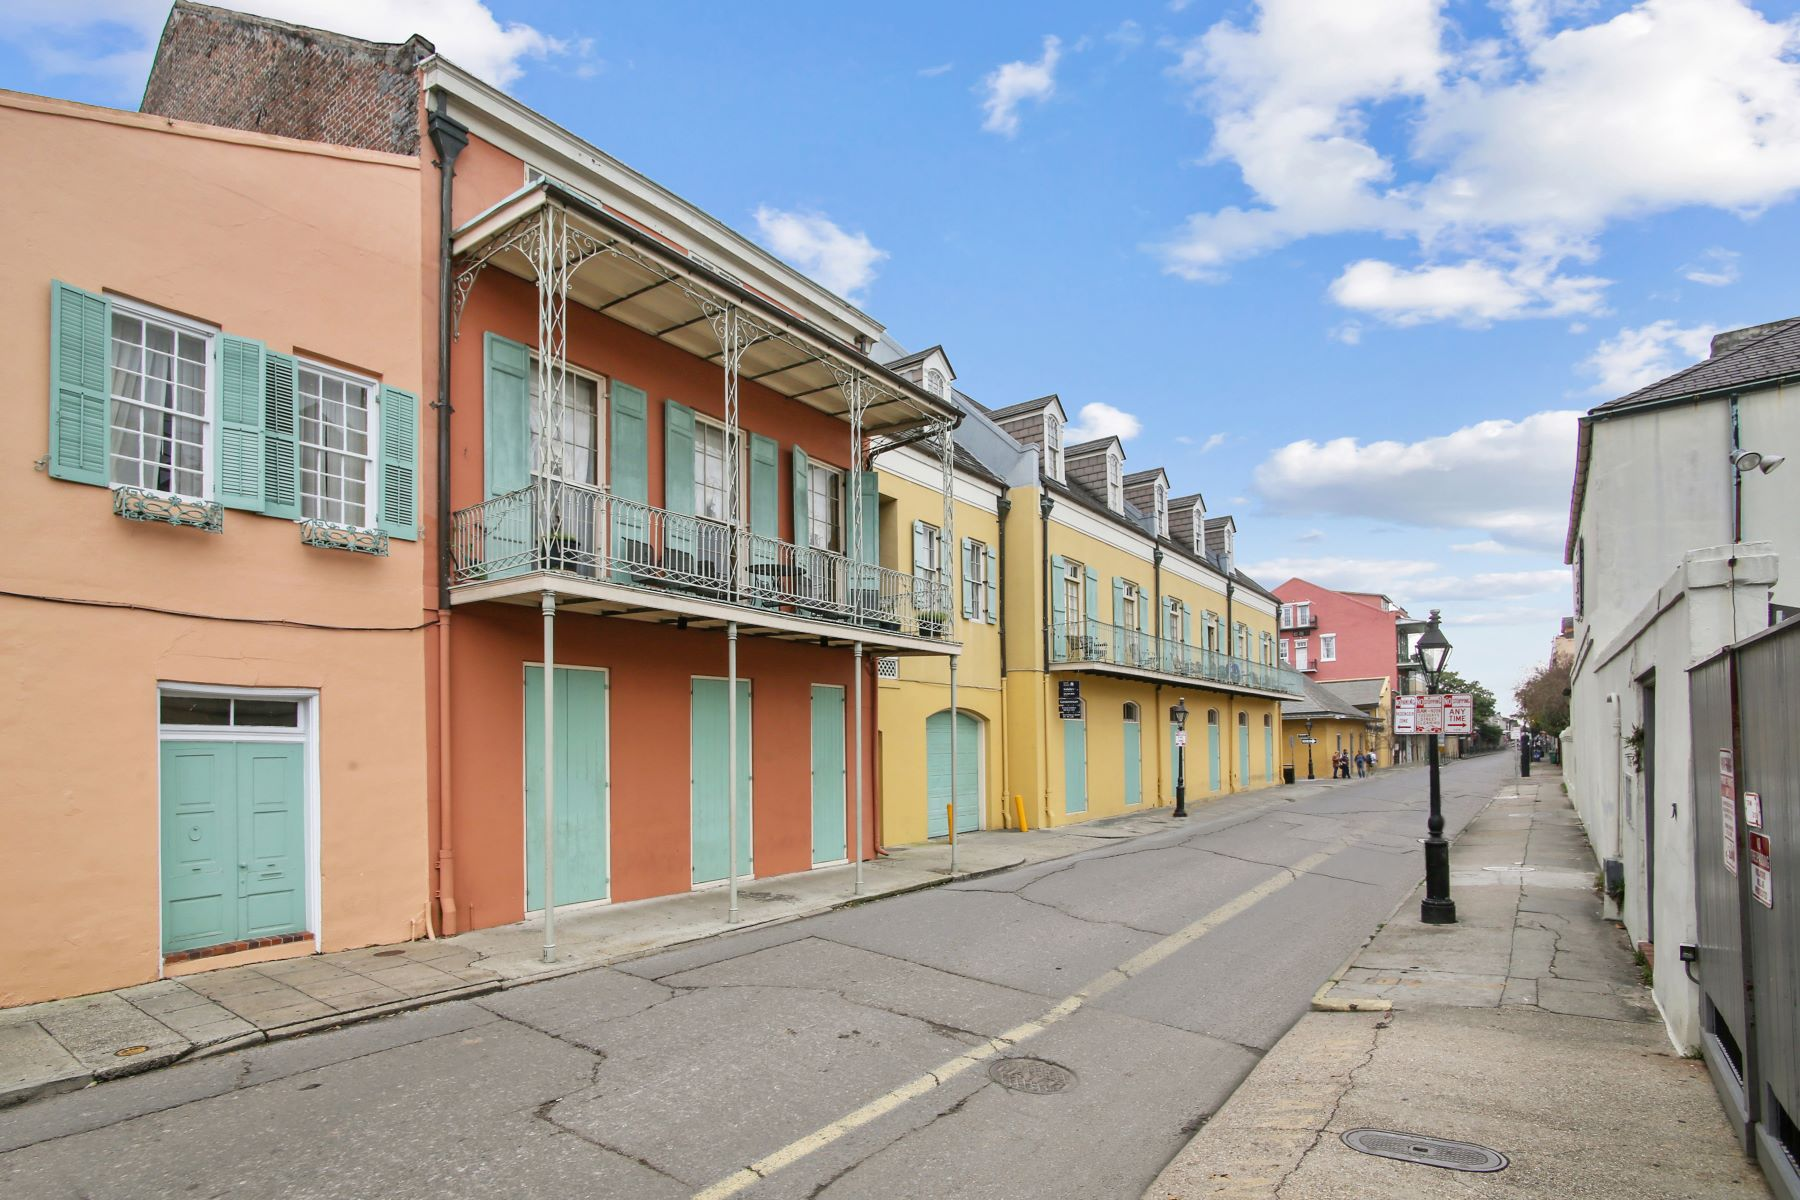 Condominiums for Active at 1040 Chartres Street, C6 1040 Chartres St C6 New Orleans, Louisiana 70116 United States